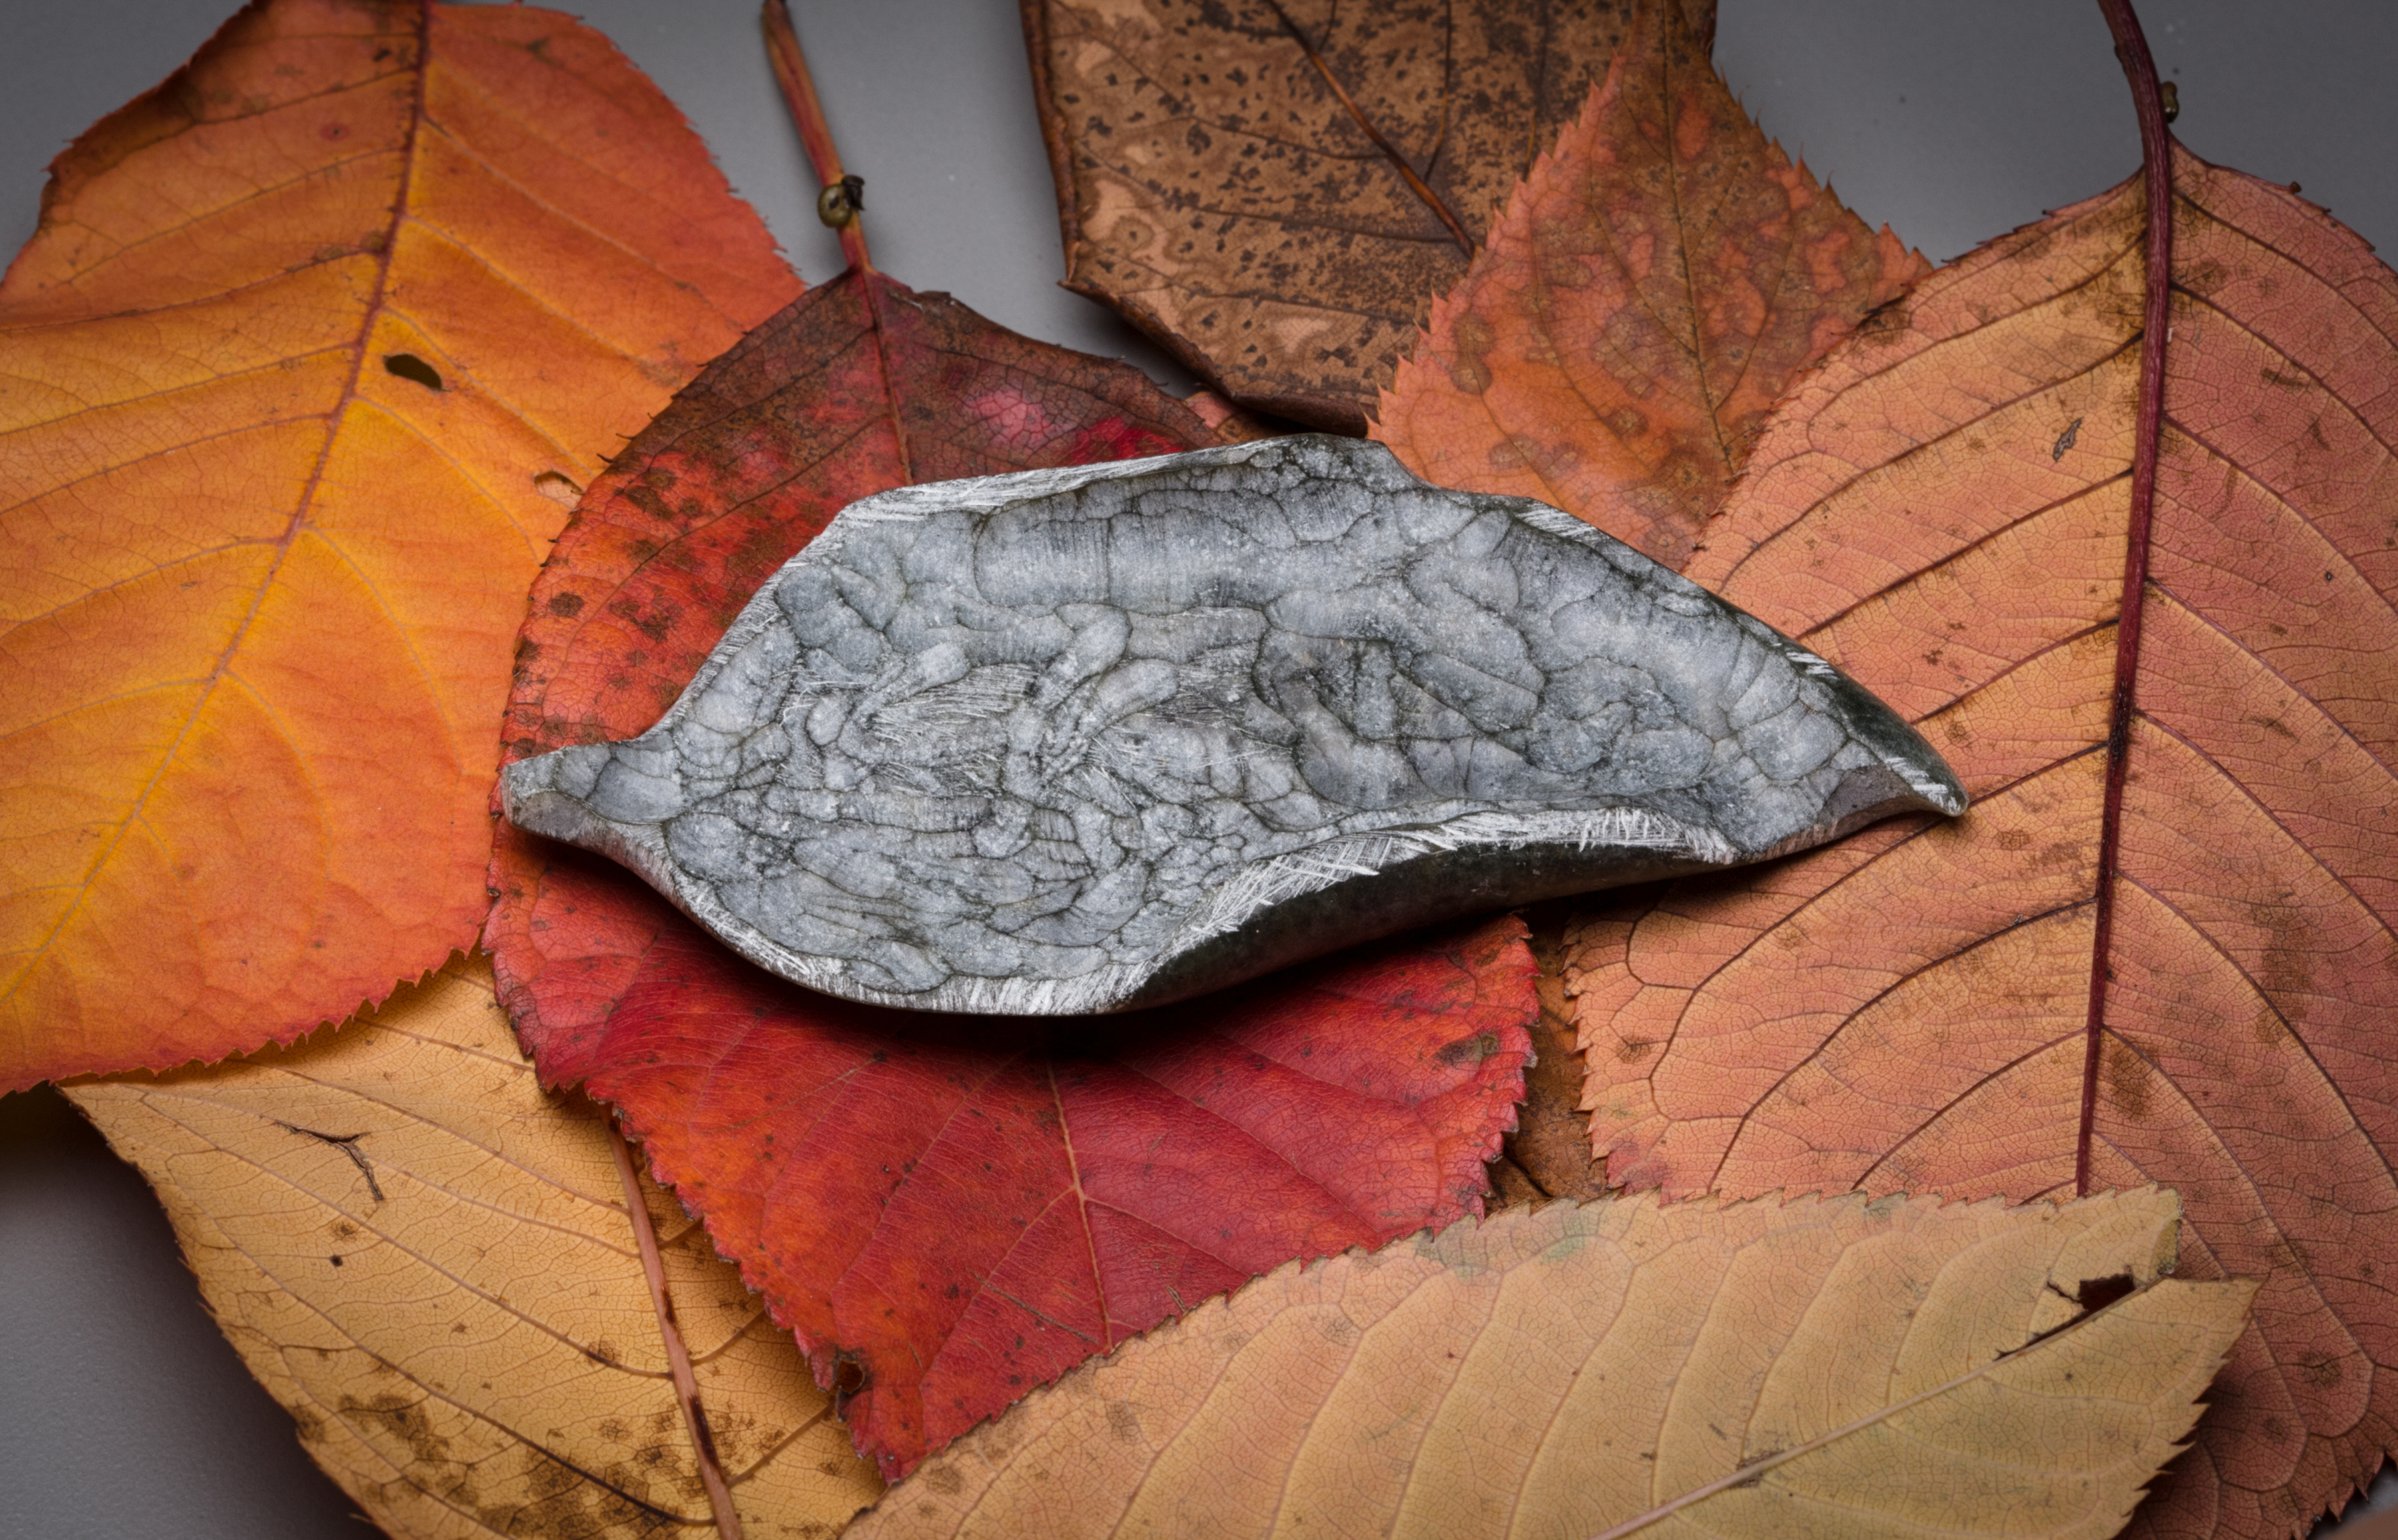 The top is textured and rubbed to mimic the veining of leaves, while the underside is polished to reveal rich greens and greys. Picking up and holding the sculpture is encouraged